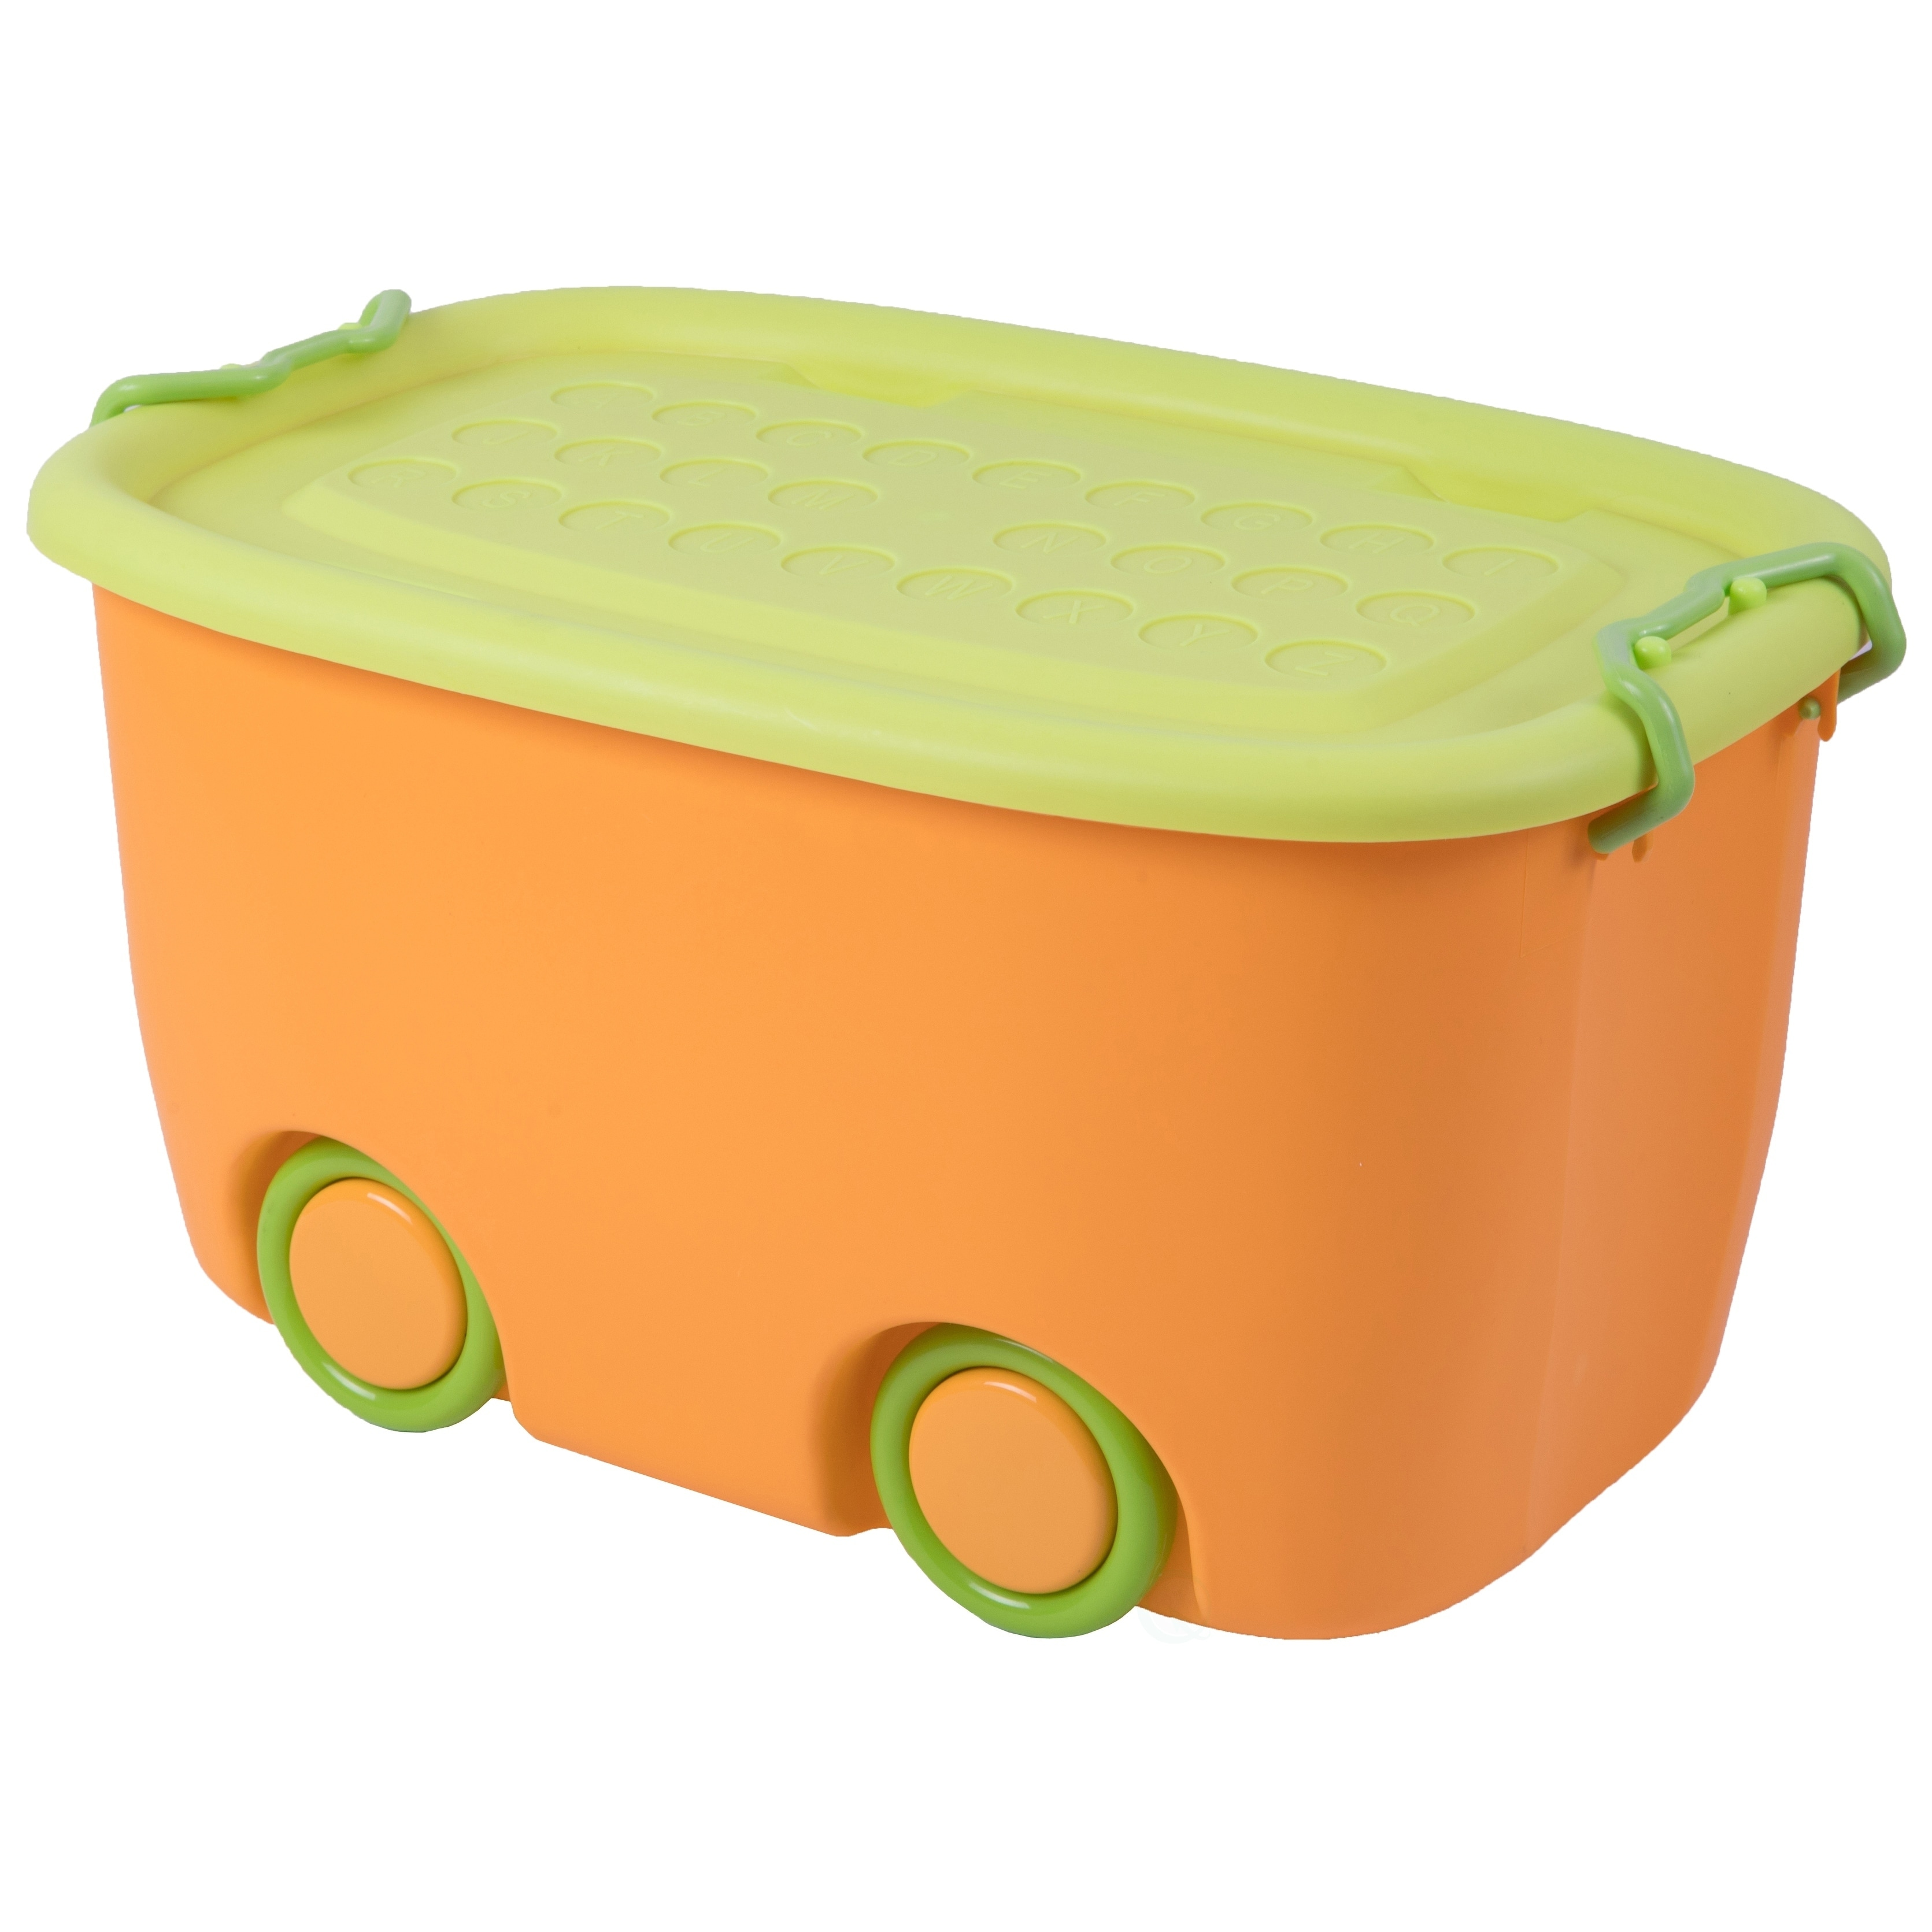 Stackable Toy Storage Box With Wheels Free Shipping On Orders Over 45 14160391